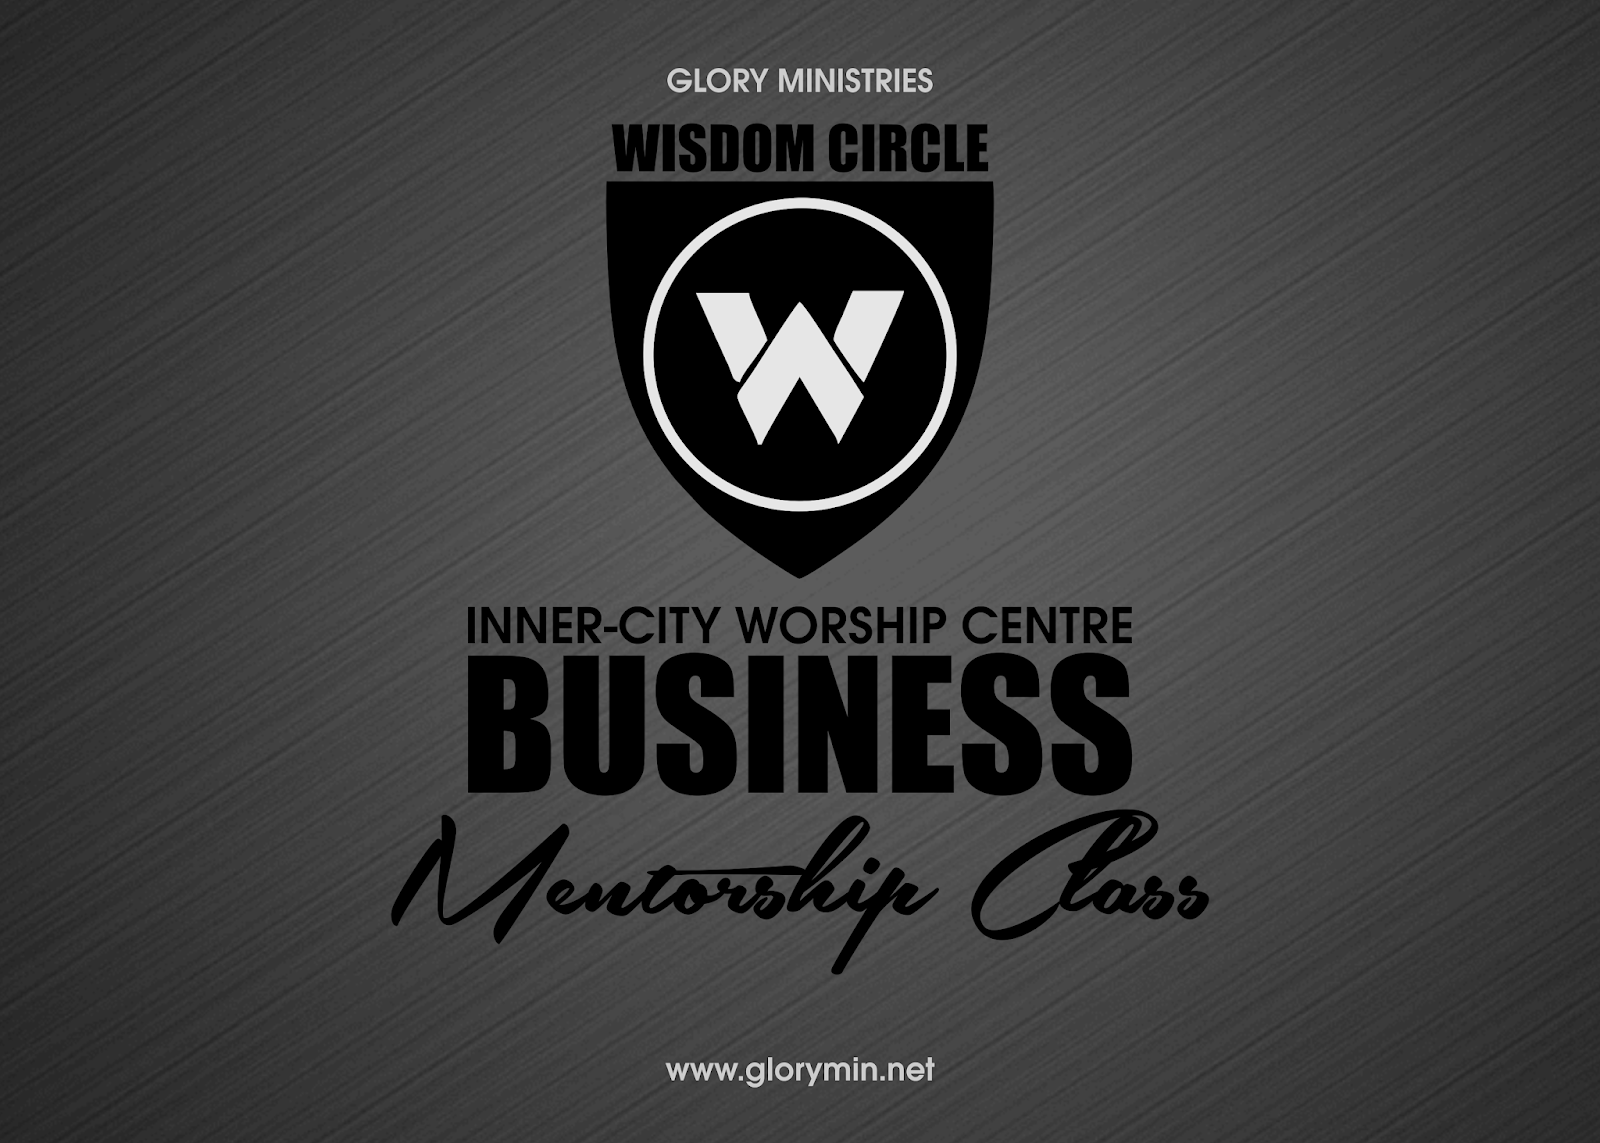 The Glory Ministries — Wisdom Circle (Inner-City Worship Centre)